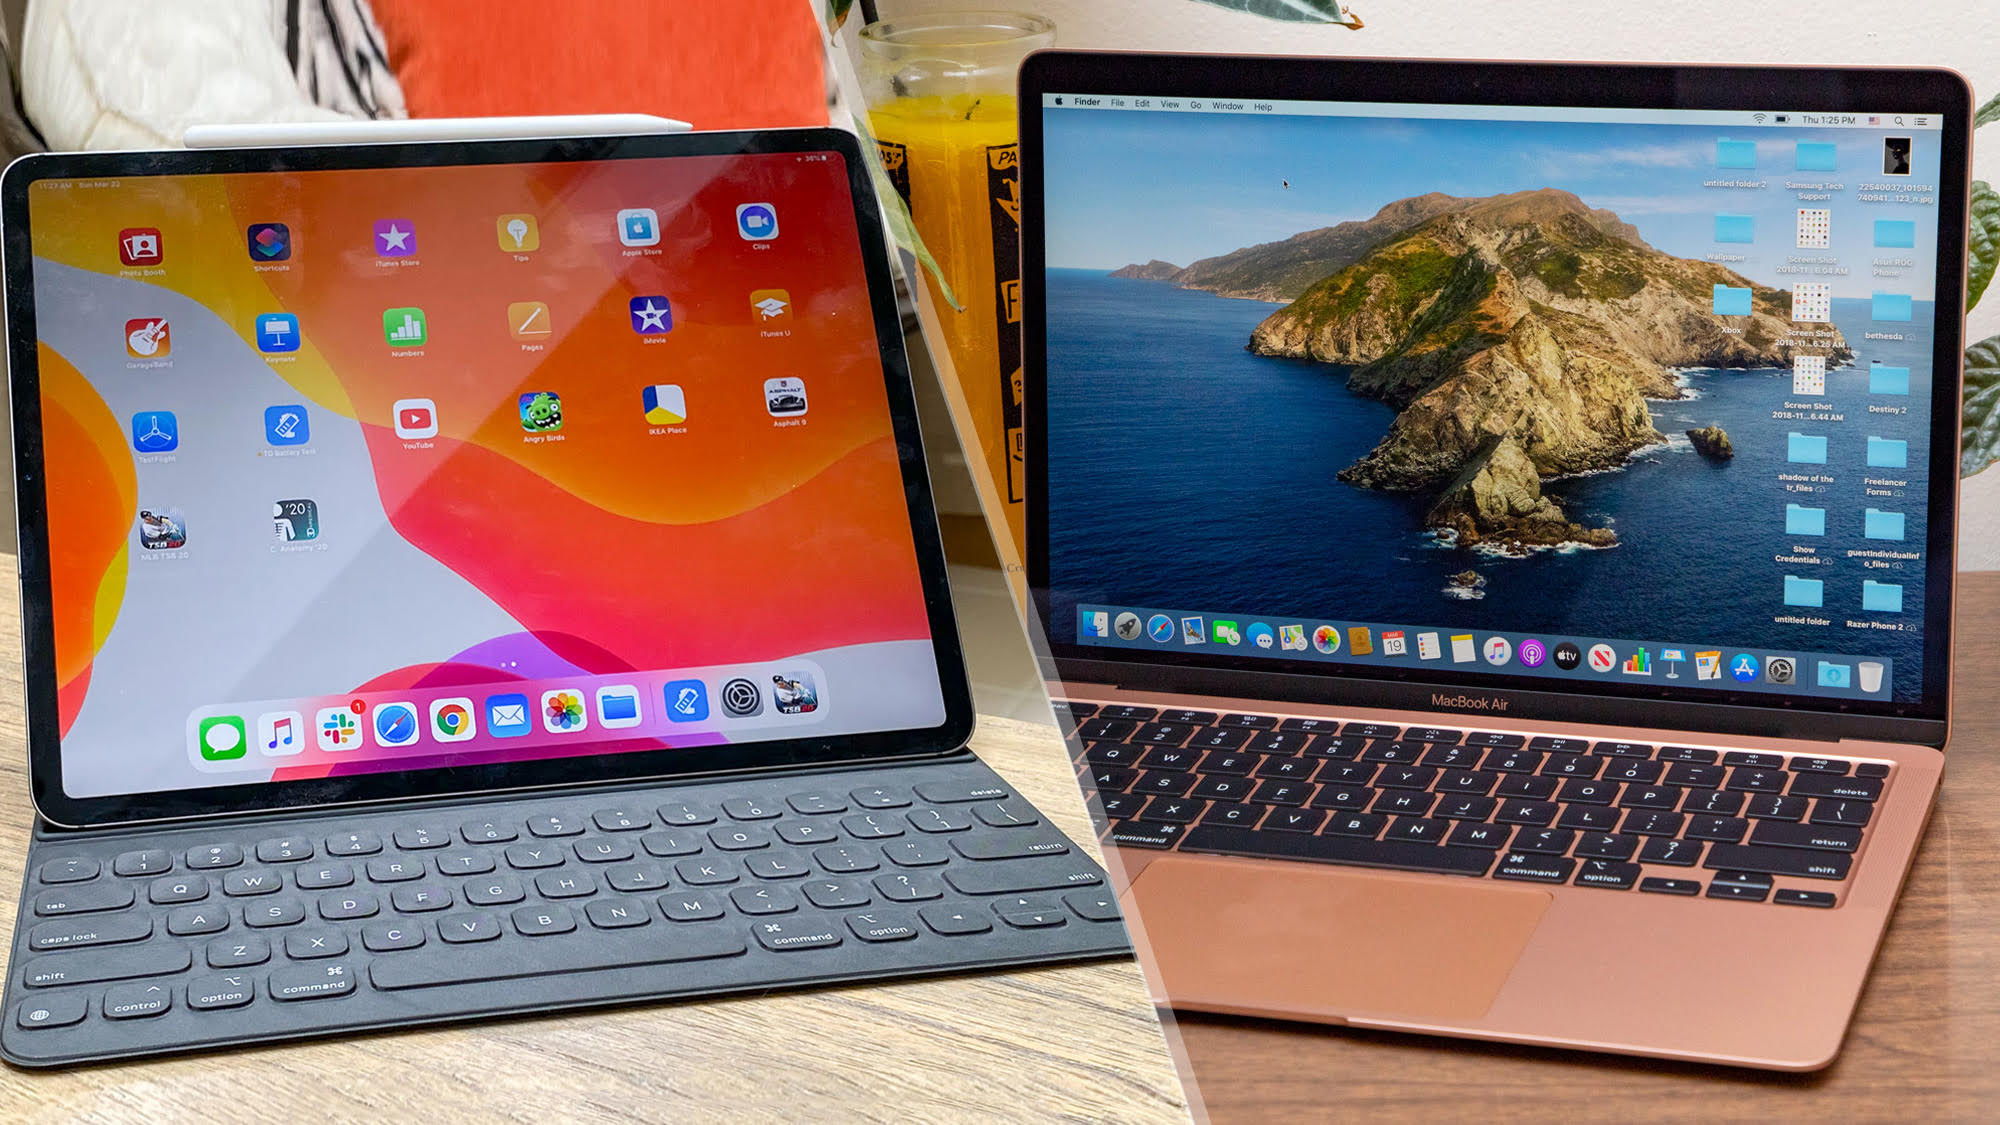 Air Tom's Ipad Pro Should You Buy Guide What Macbook Vs